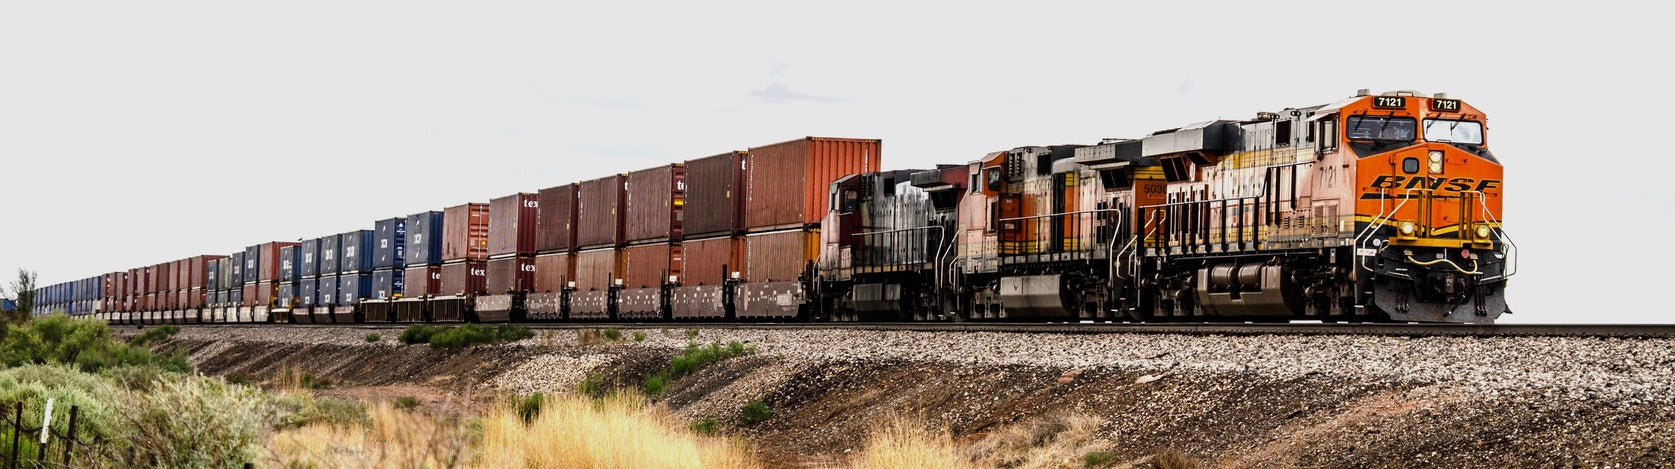 Container train powered by BNSF